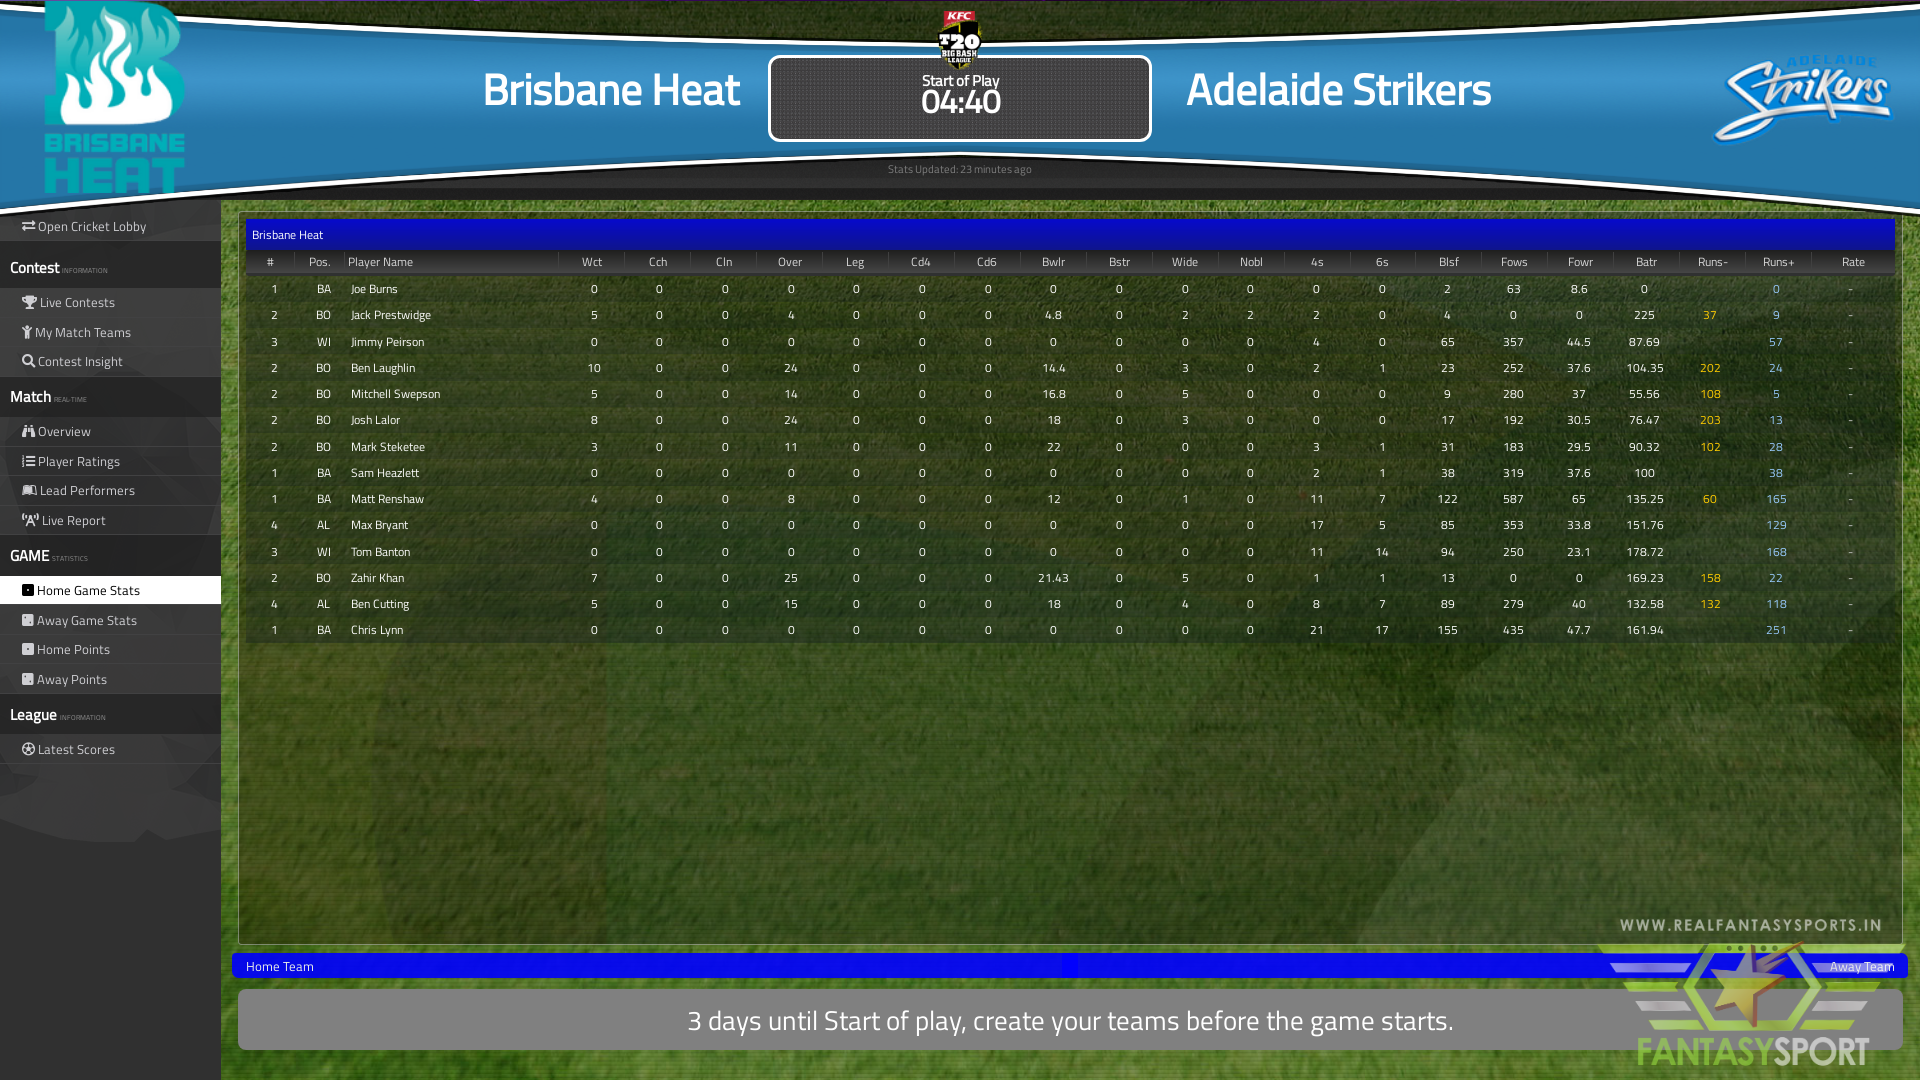 Fantasy Cricket Brisbane Heat Vs Adelaide Strikers Tuesday 14th January 2020